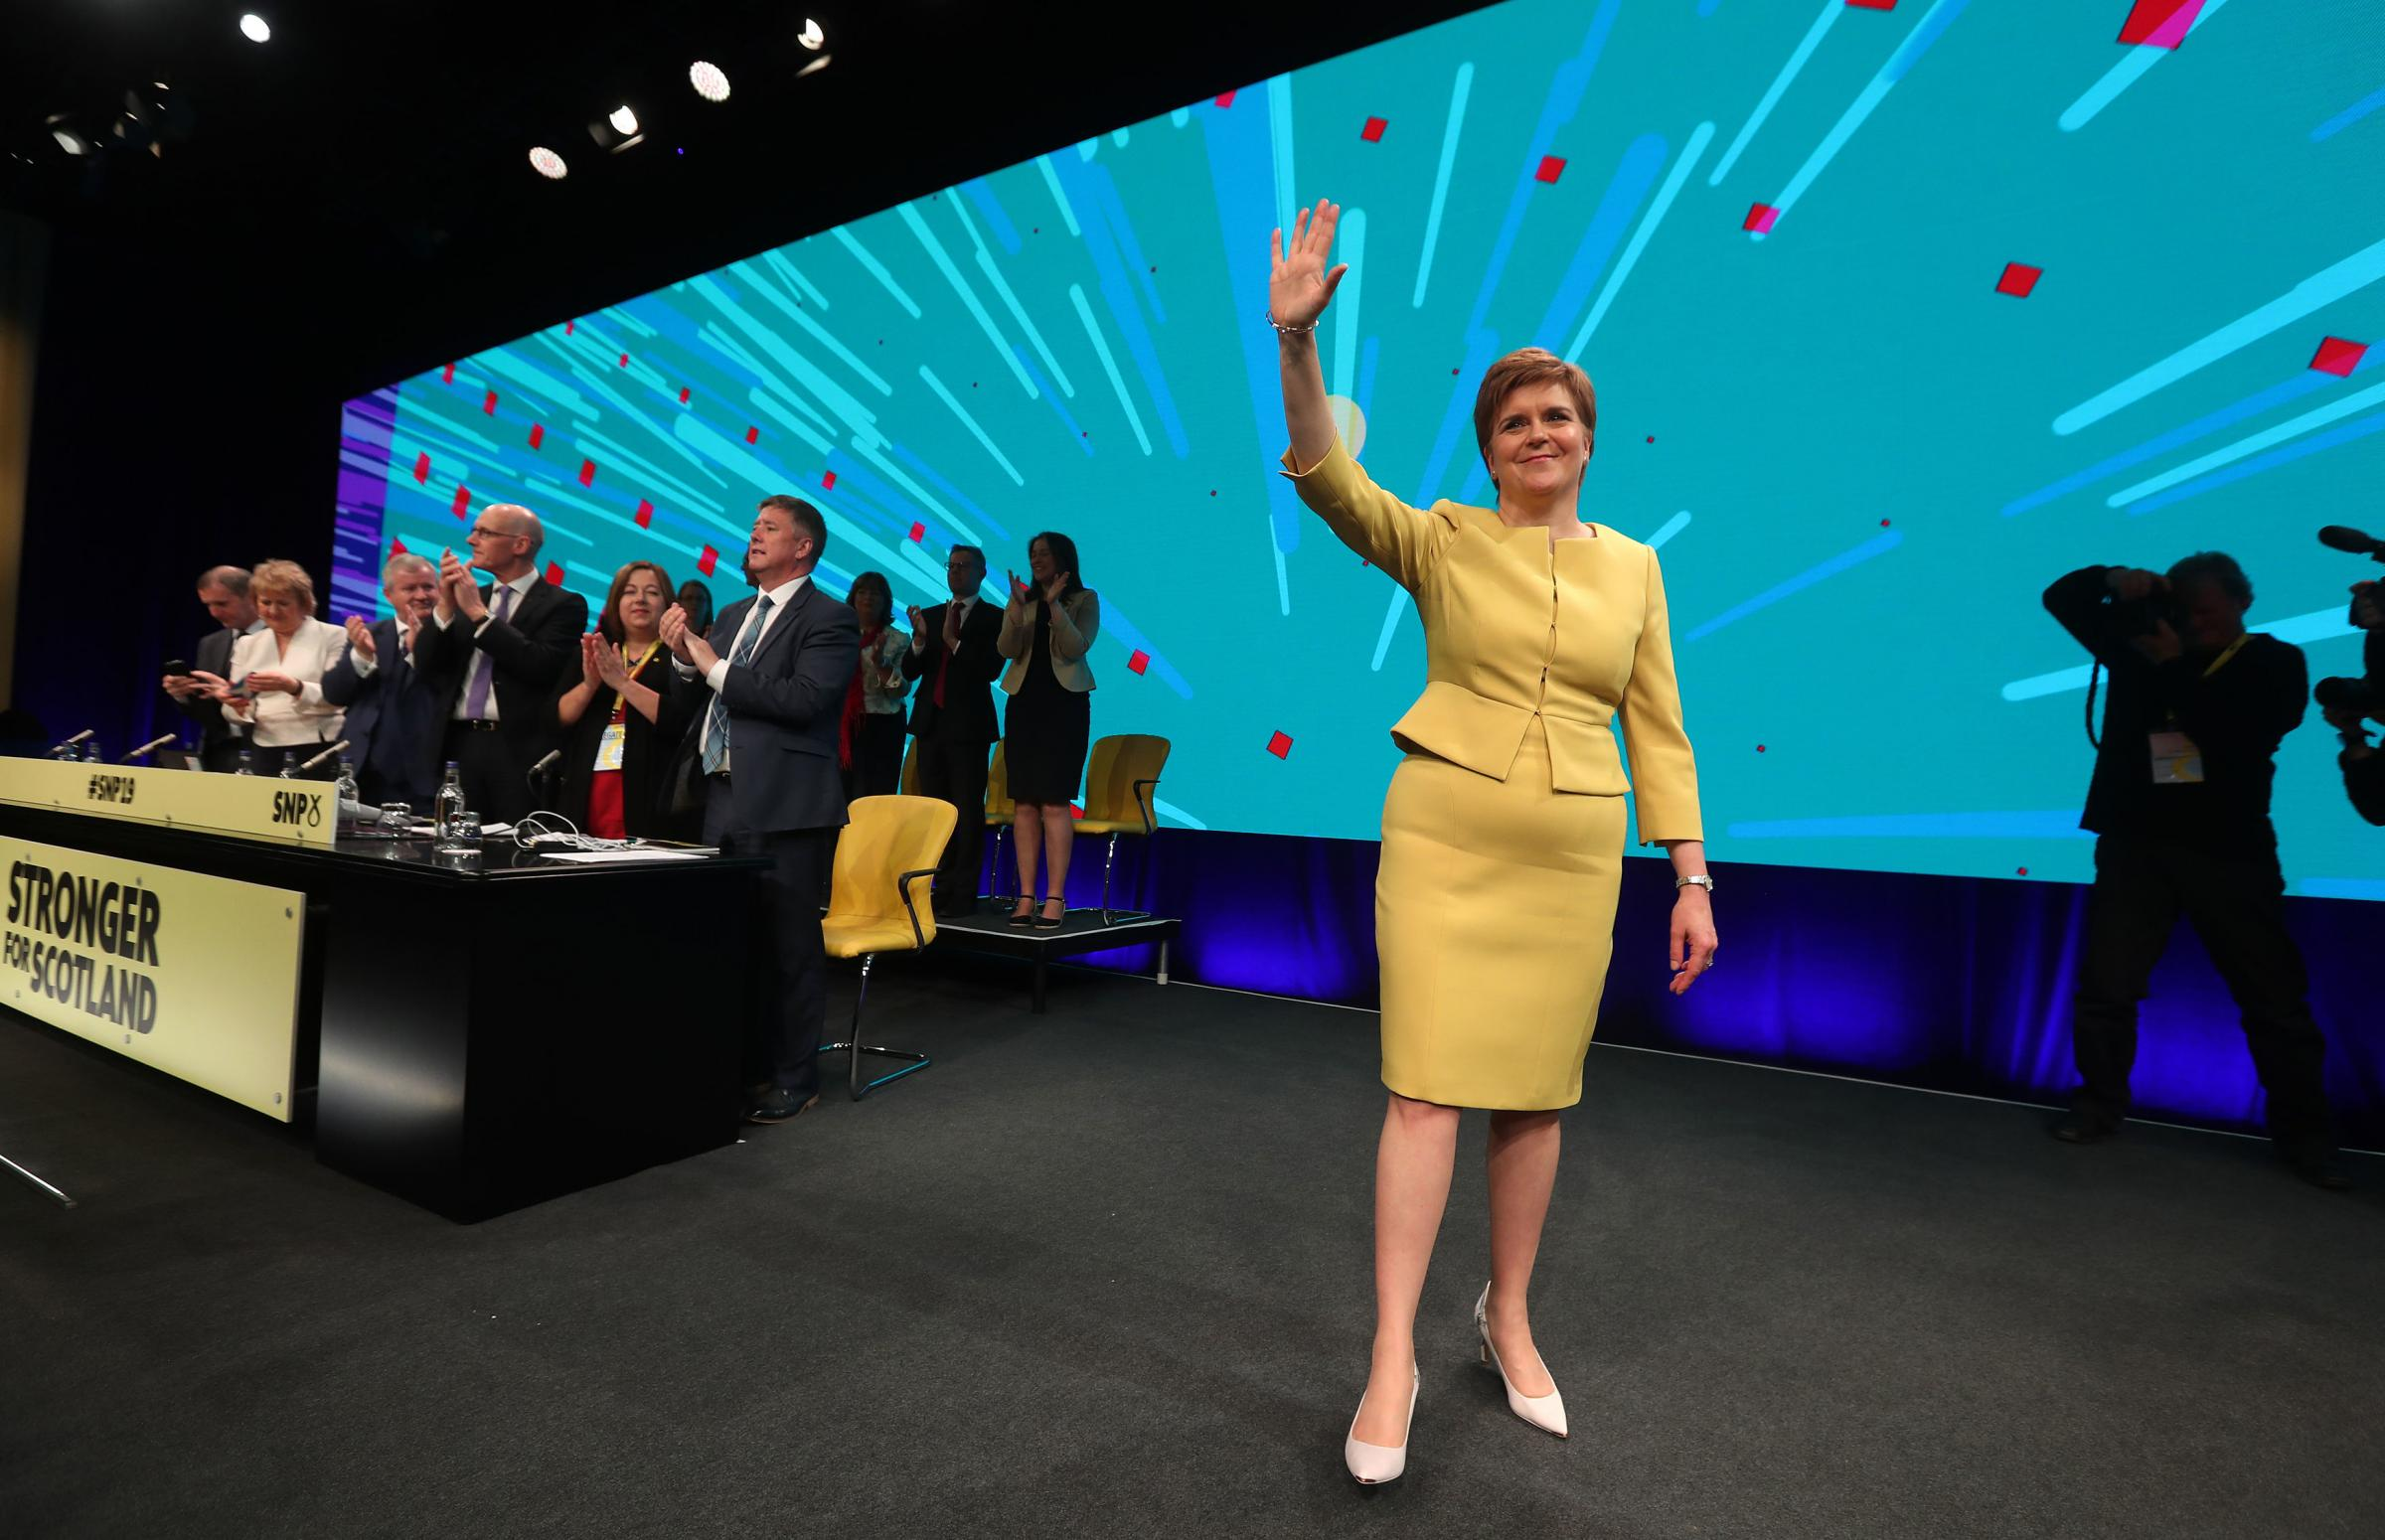 Nicola Sturgeon will ask for Indyref2 powers within weeks